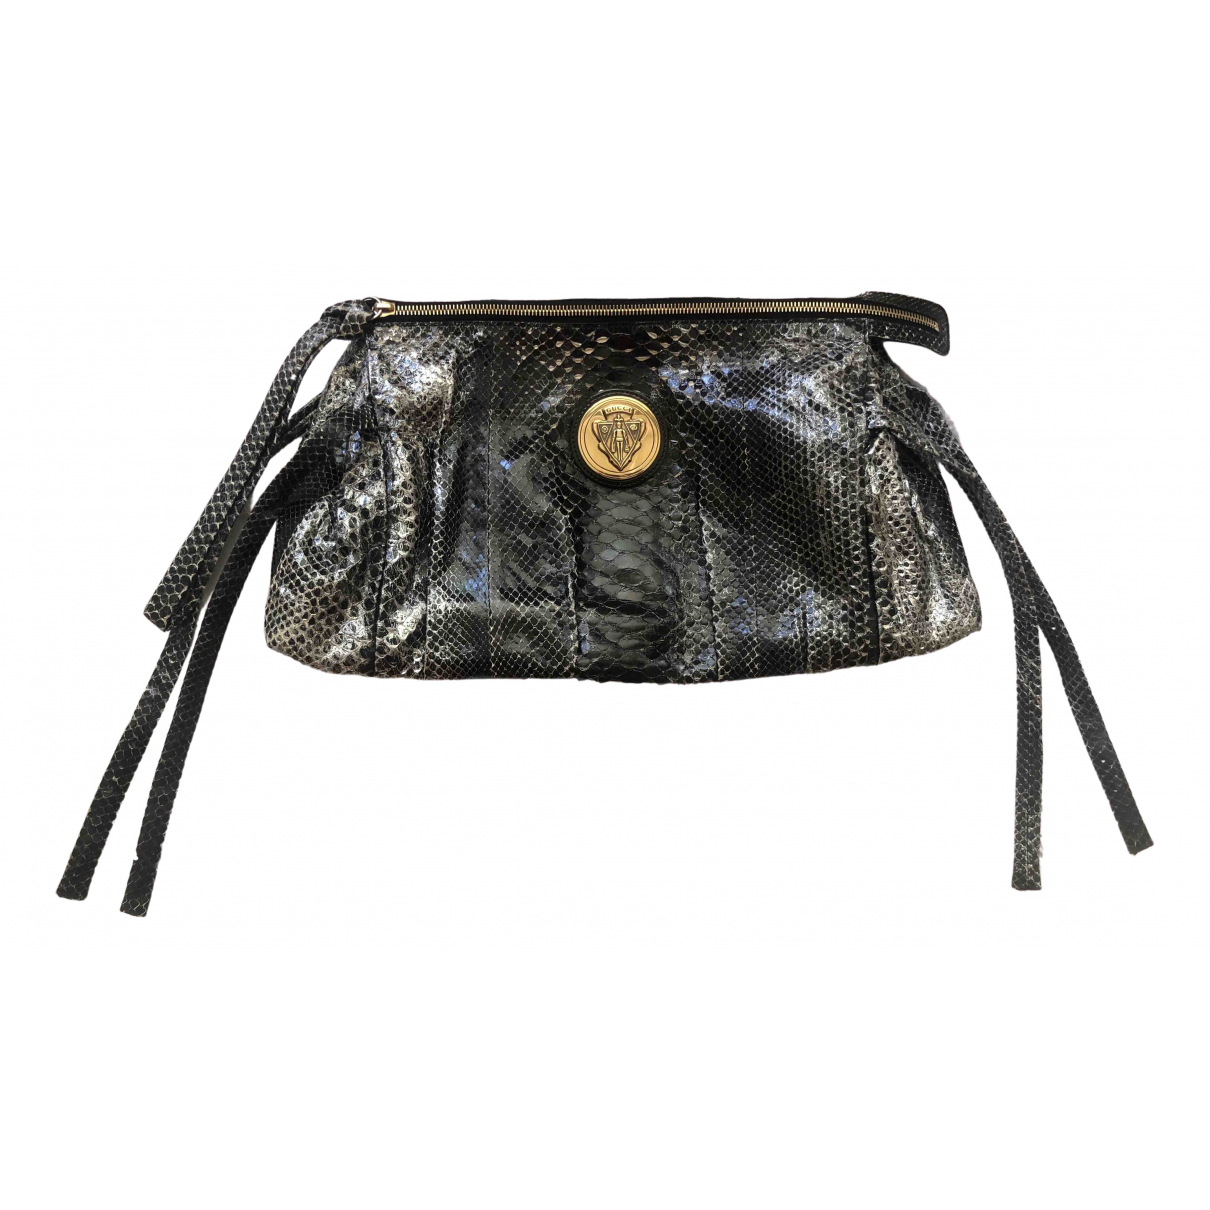 Gucci Hysteria Black Water snake Clutch bag for Women \N